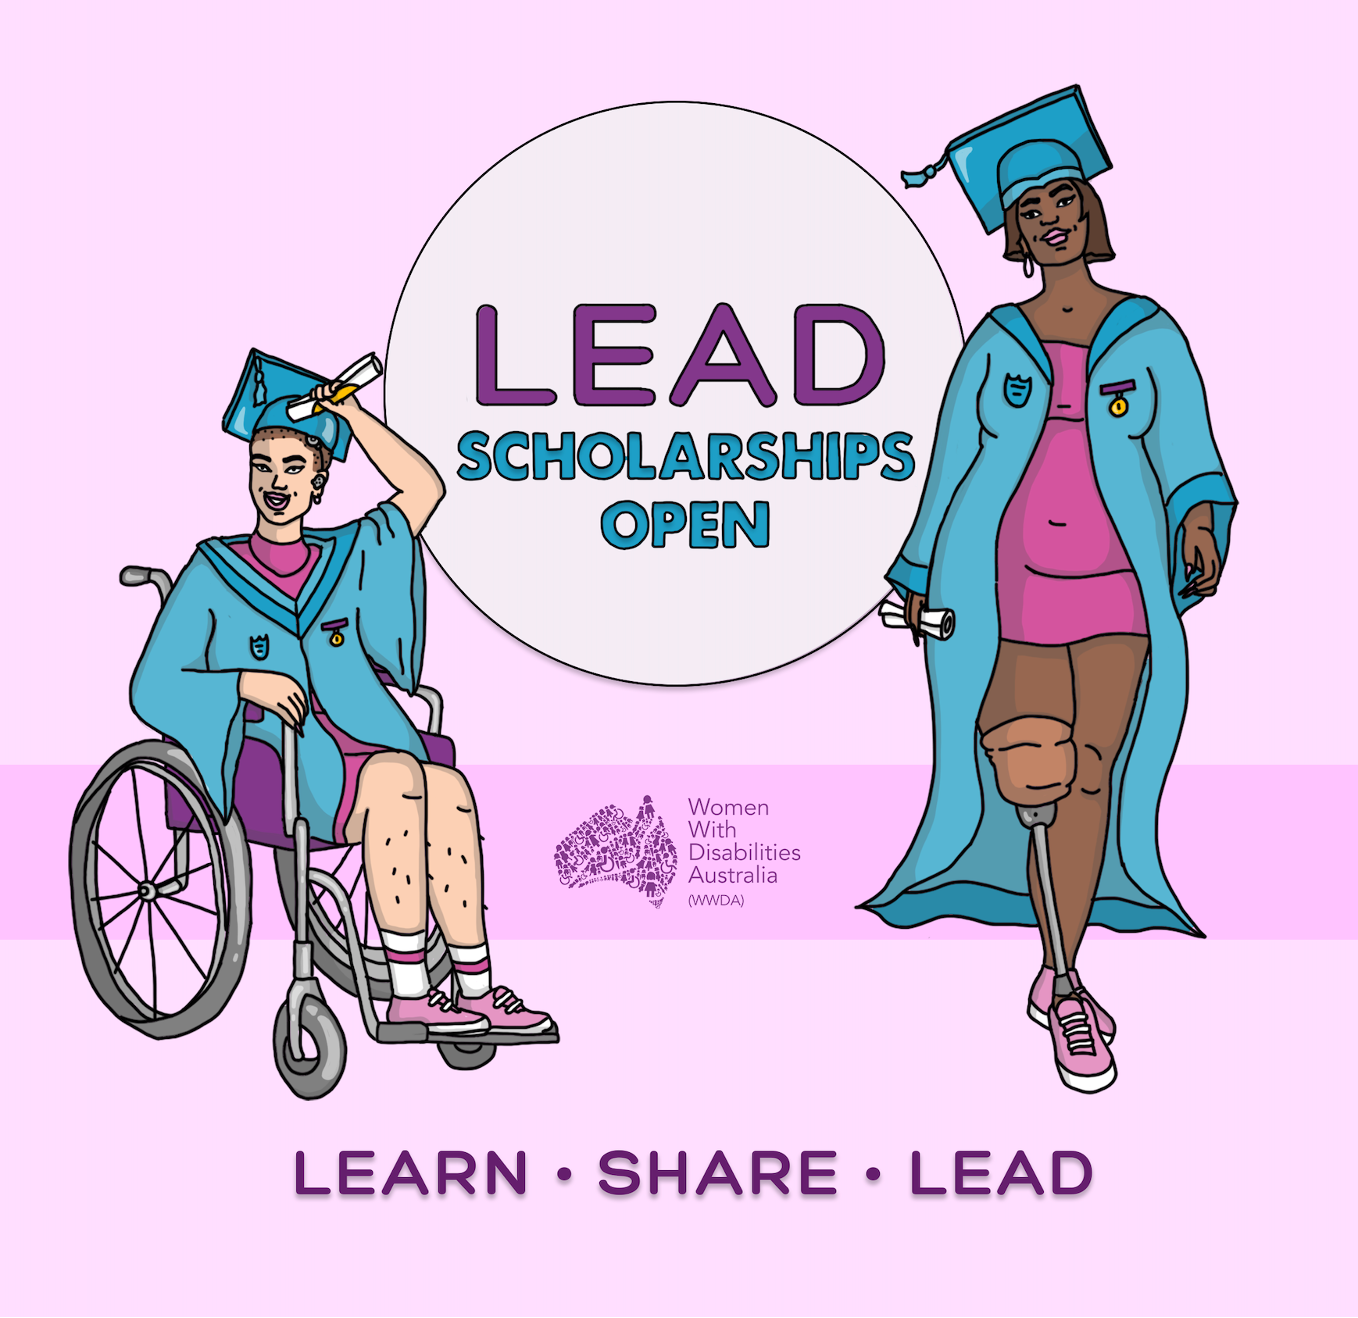 [Image: bright pink background. In the middle is the WWDA LEAD Scholarships logo with an illustration of two women wearing graduation gowns and hats, representing disability and diversity. Text reads: 'LEAD Scholarship Open']